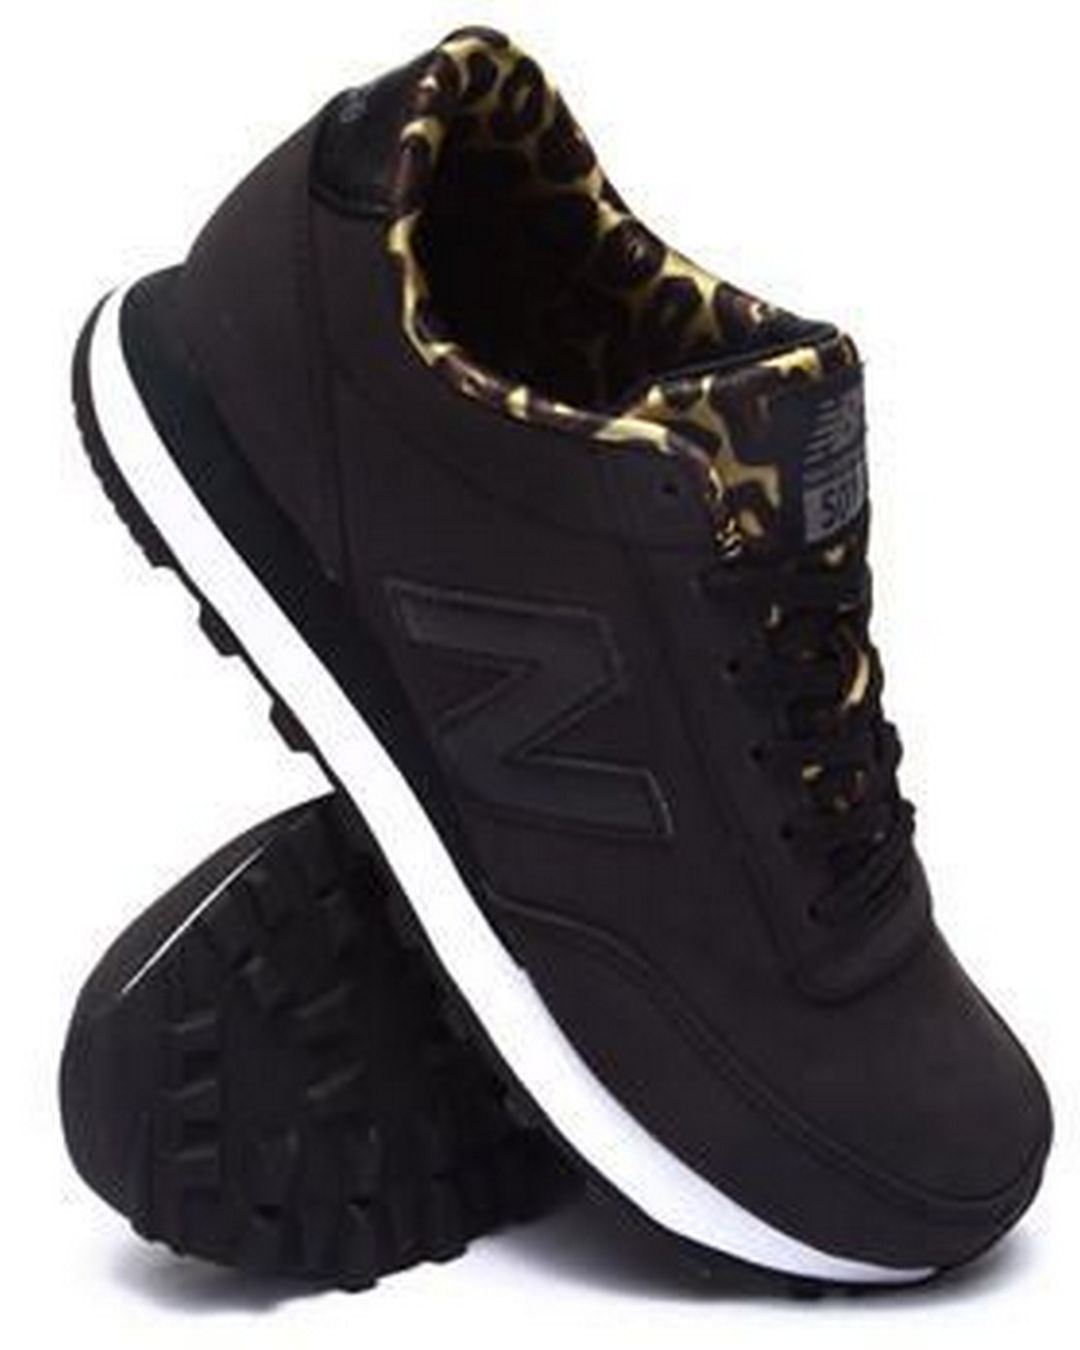 wholesale dealer c4cd1 80f6a Recommended New Balance Shoes for Marathon (Men and Women ...